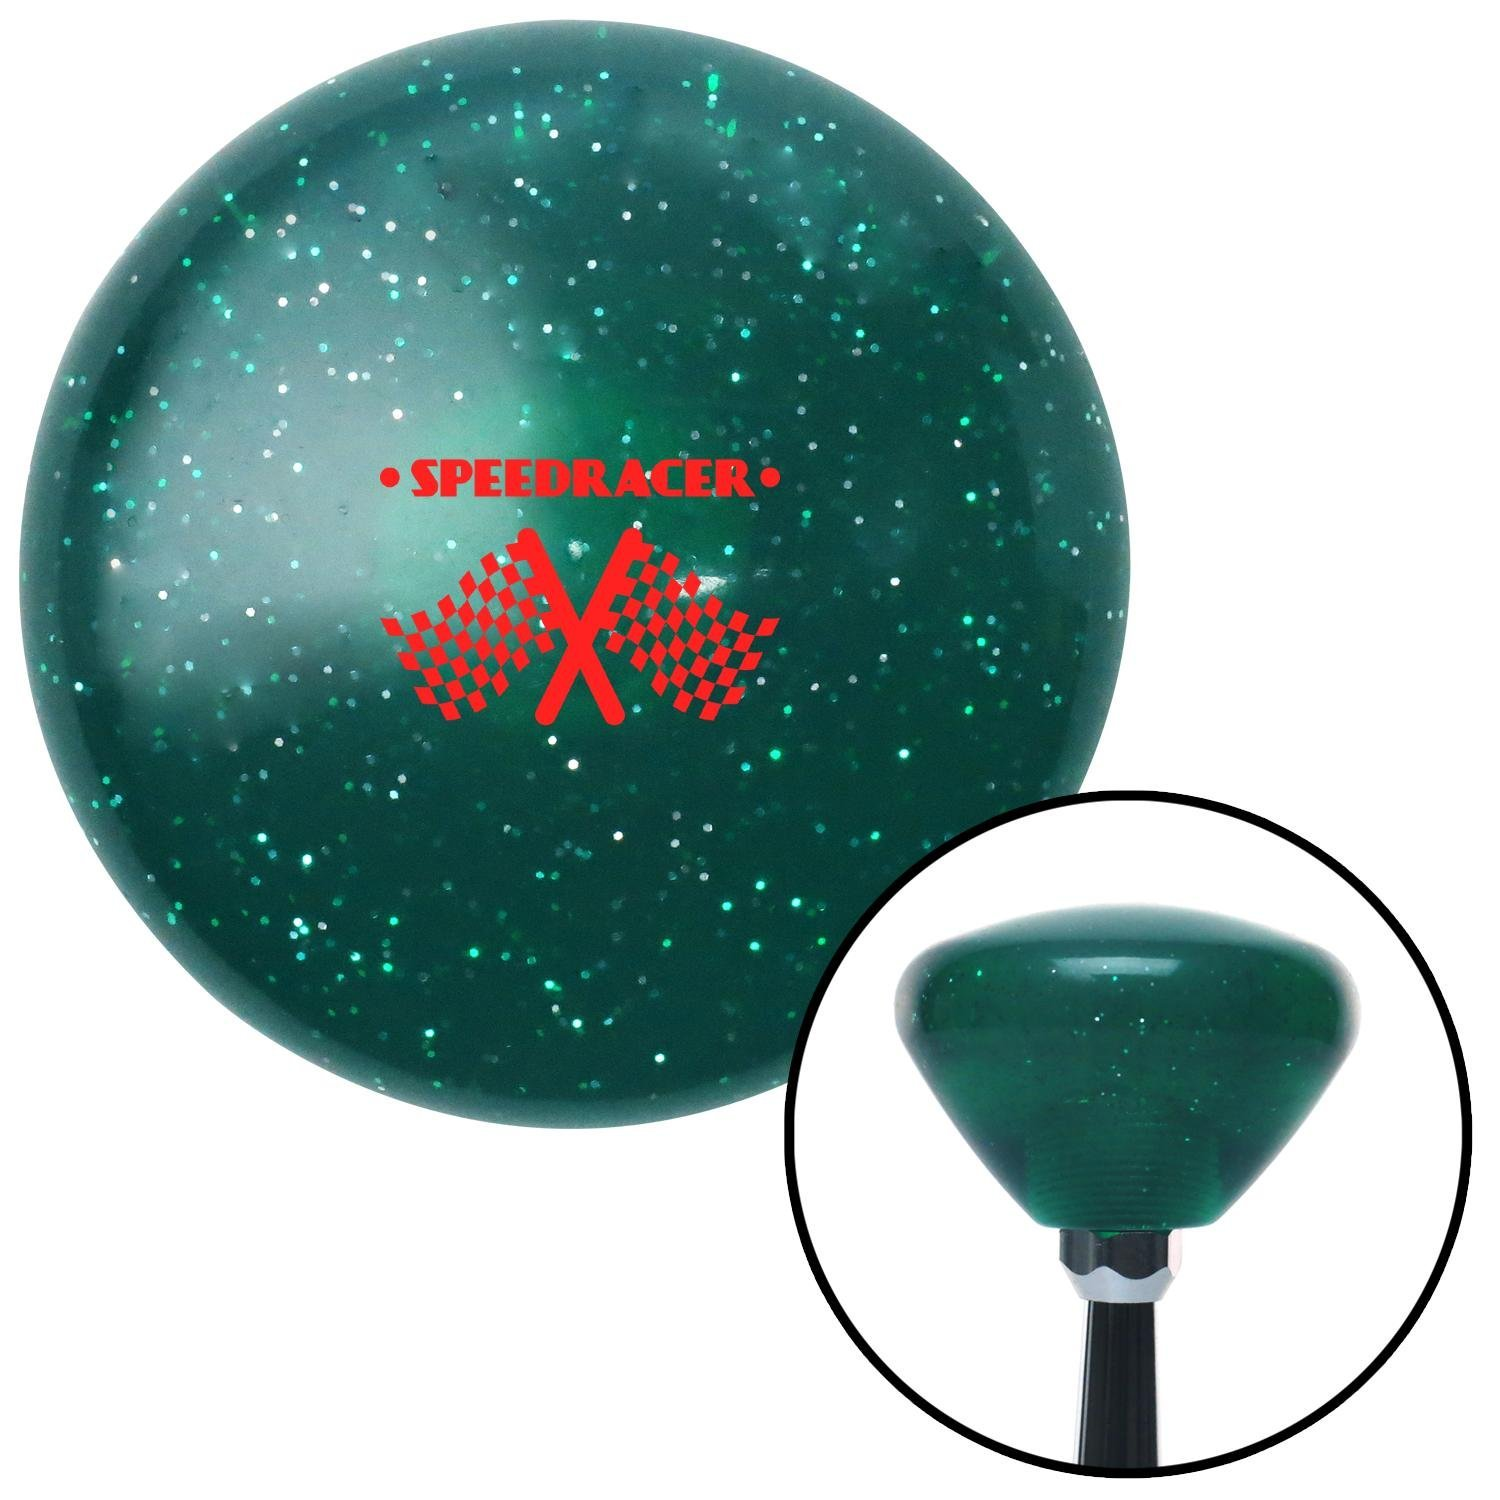 American Shifter 292629 Shift Knob Red Speed Racer Green Retro Metal Flake with M16 x 1.5 Insert